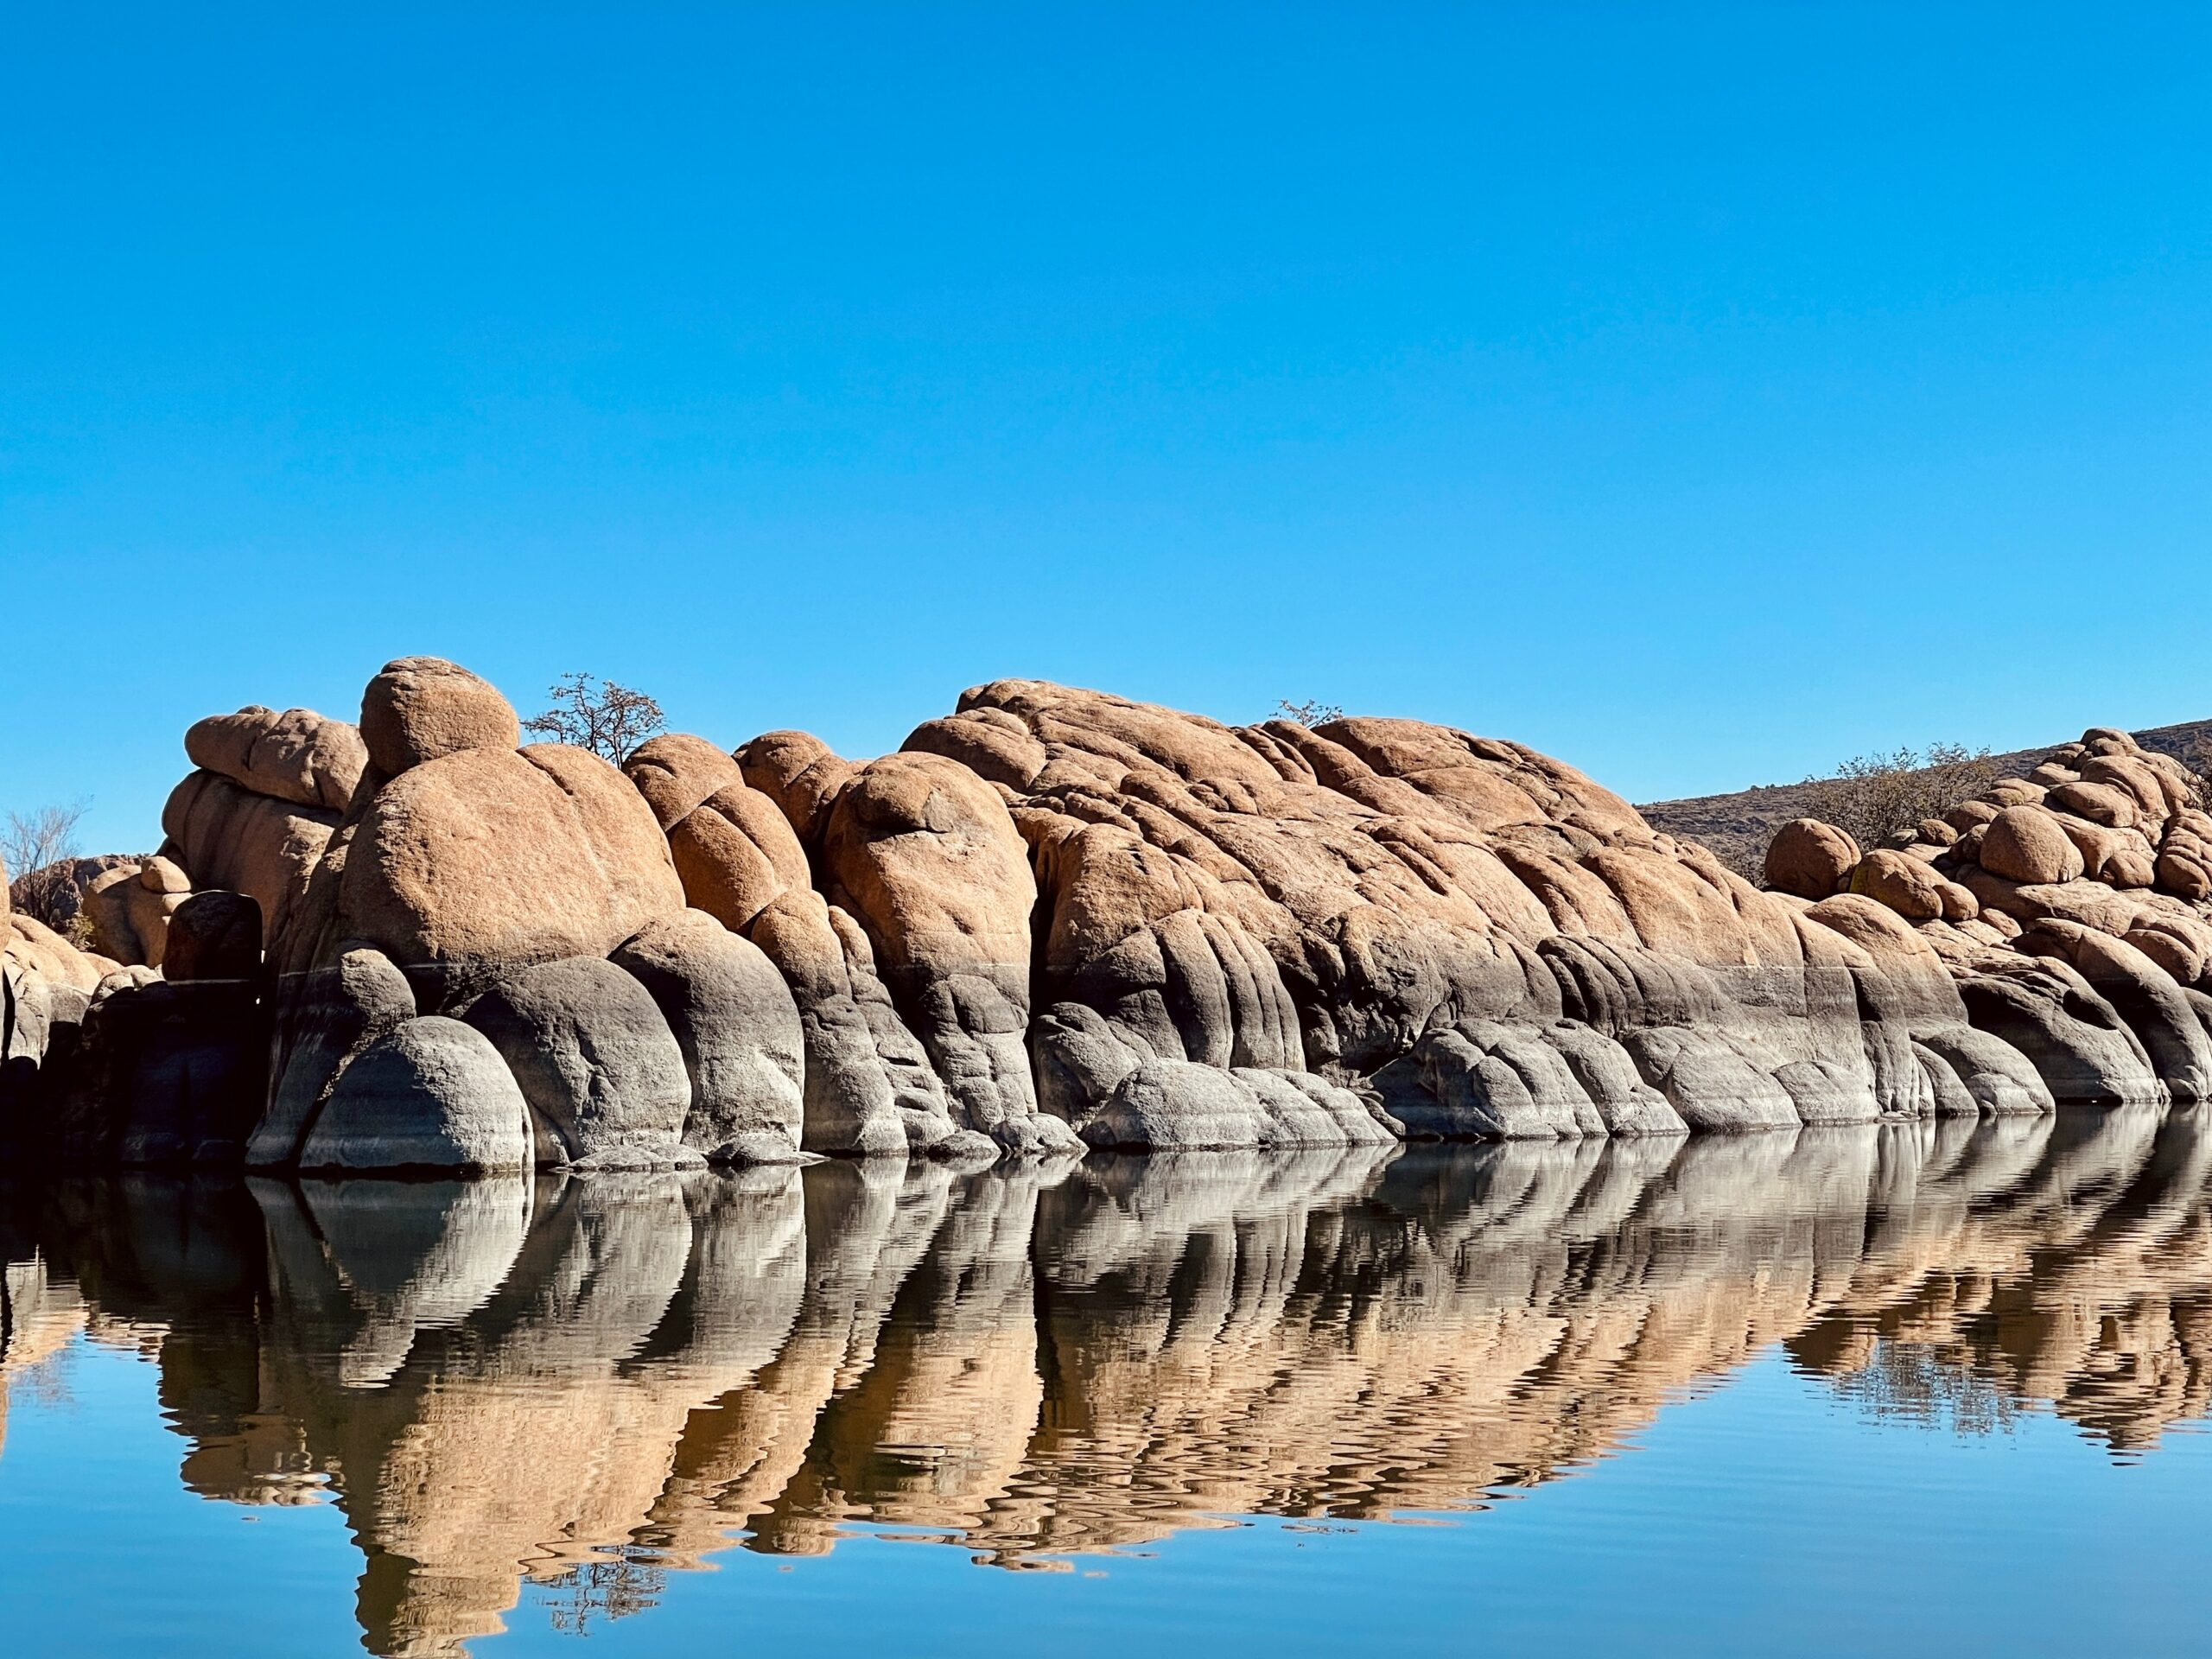 A rock formation reflected in the water at Watson Lake in Prescott, Arizona